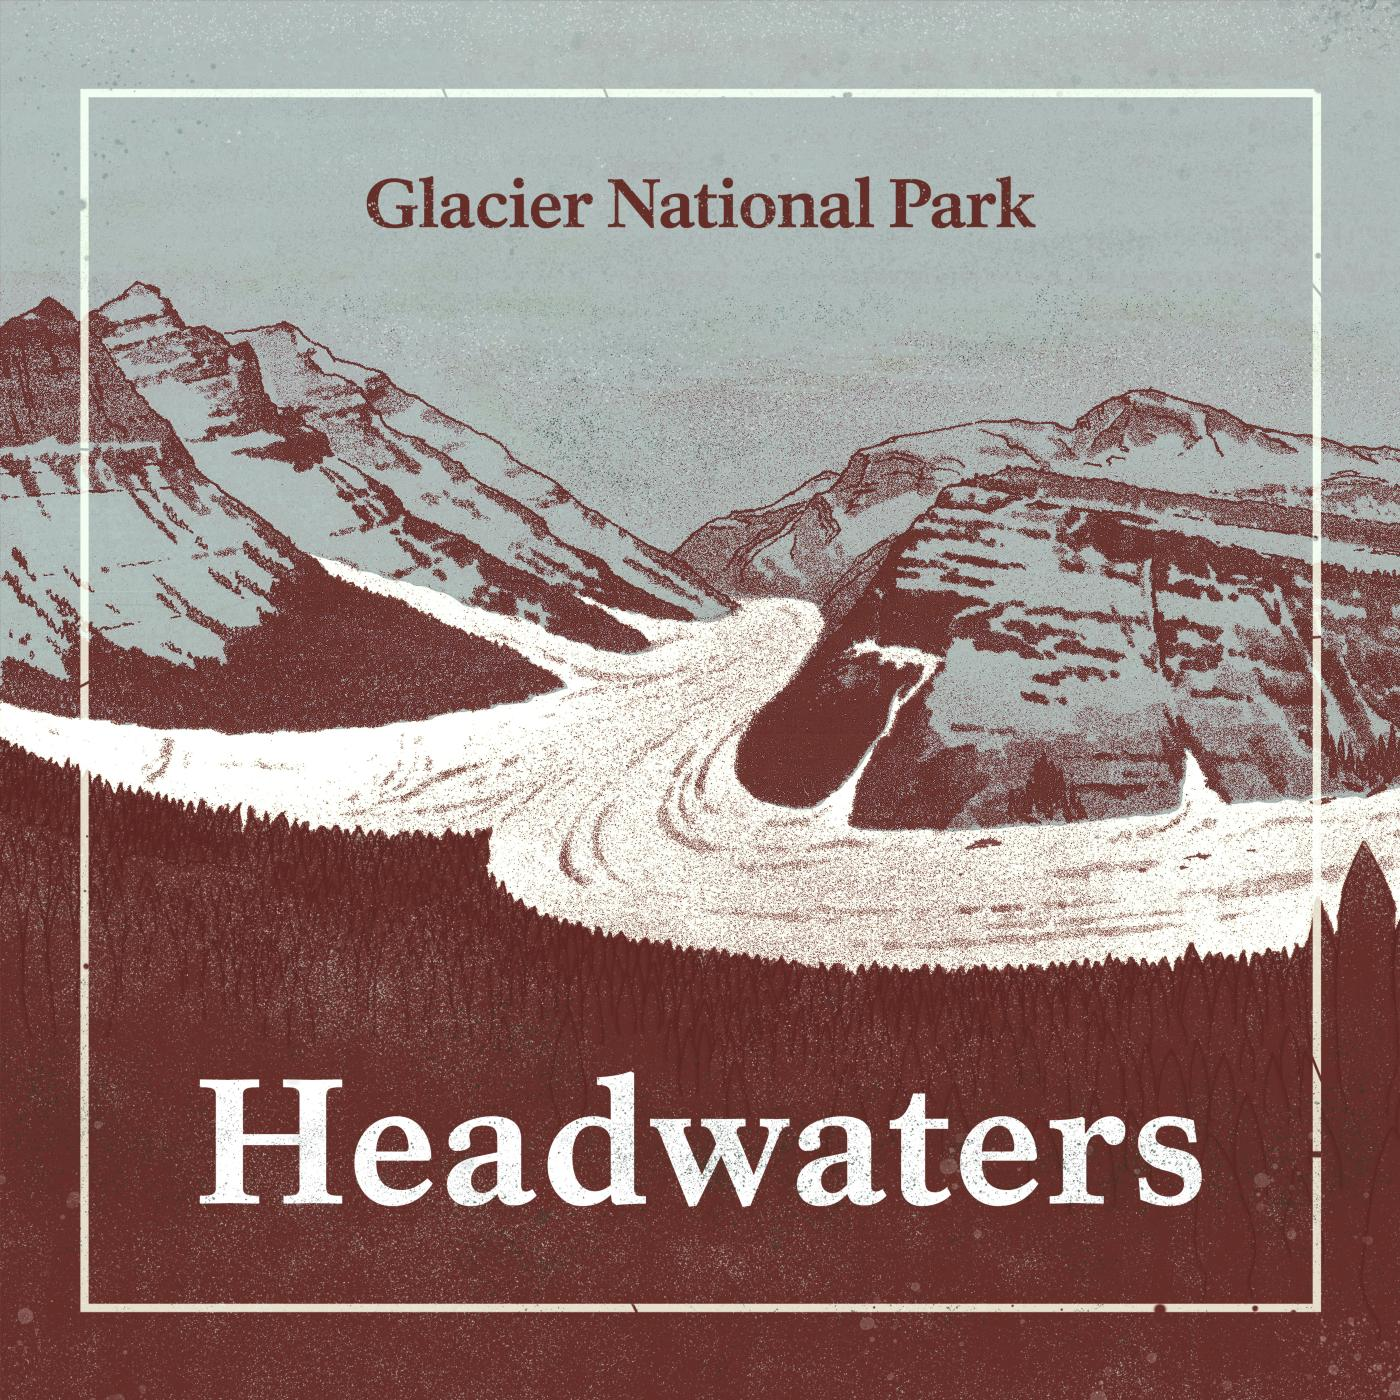 "A graphic of mountains and glaciers with text that reads ""Headwaters, Glacier National Park""."